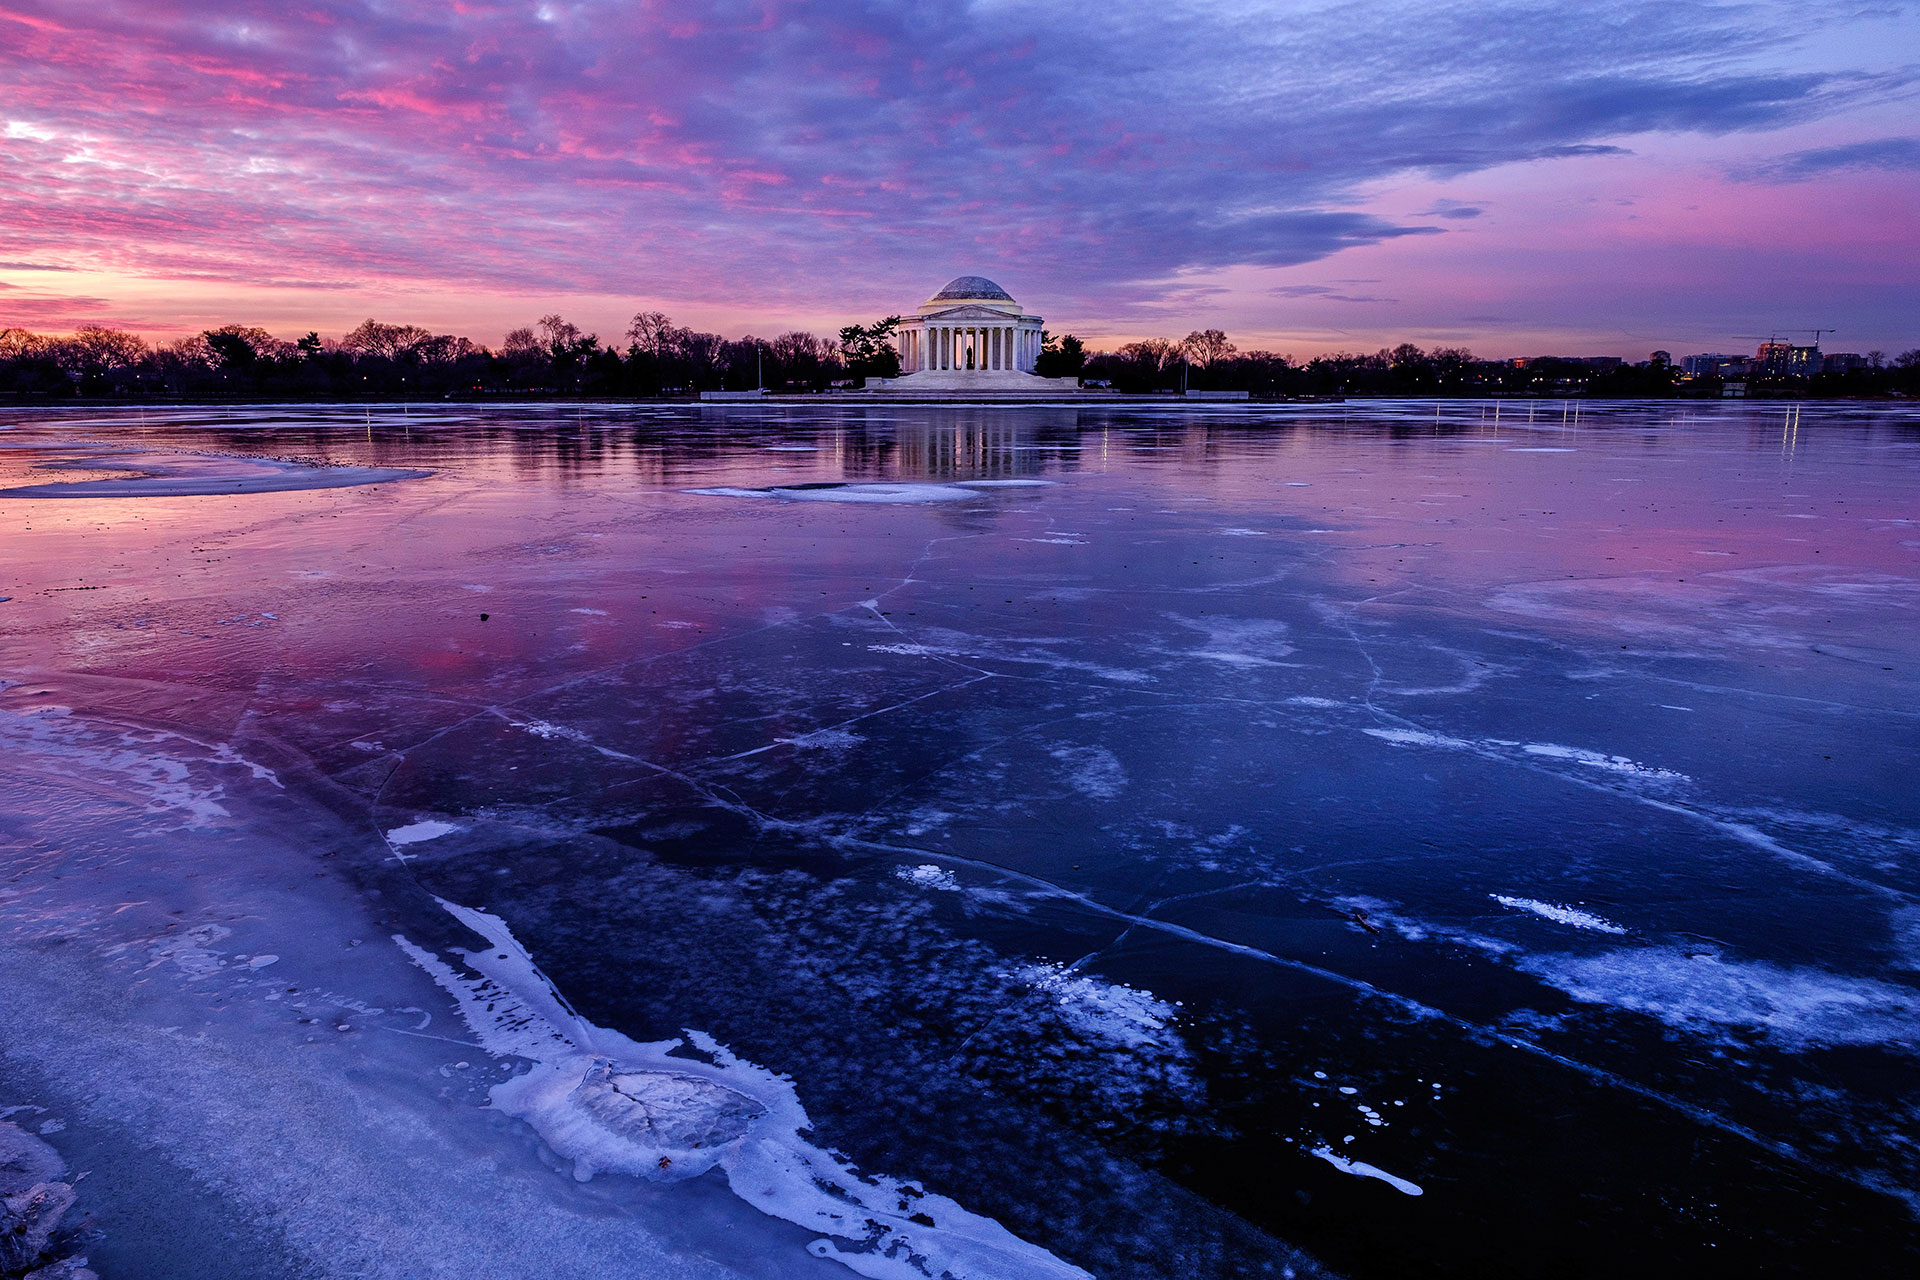 The Jefferson Memorial is reflected in the frozen surface of the Tidal Basin